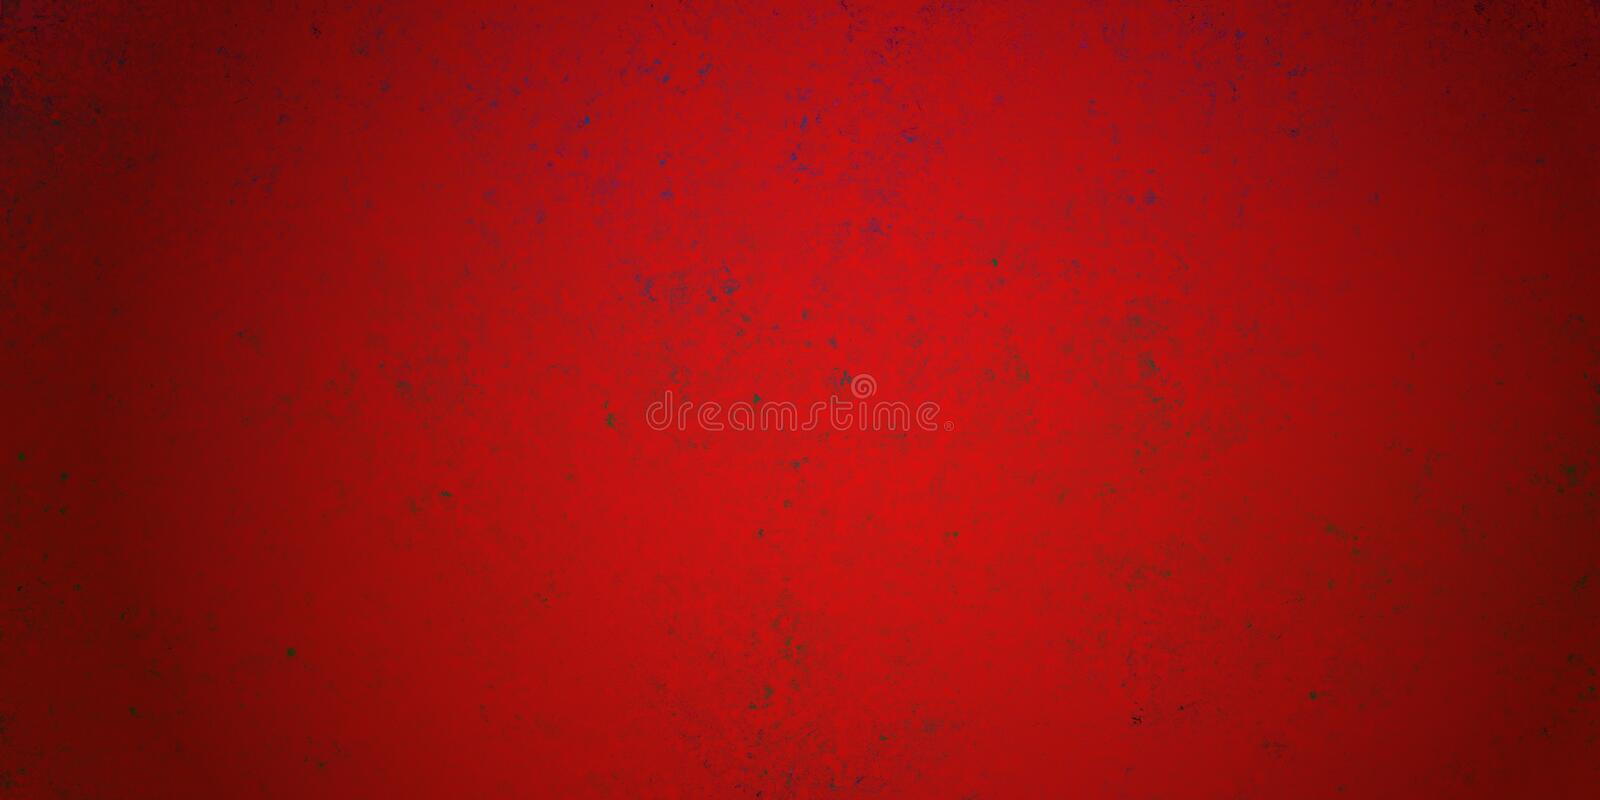 Elegant red Christmas background with grunge distressed paint texture in old vintage design with black vignette border and dark sp. Eckled paint spatter drips royalty free stock photos